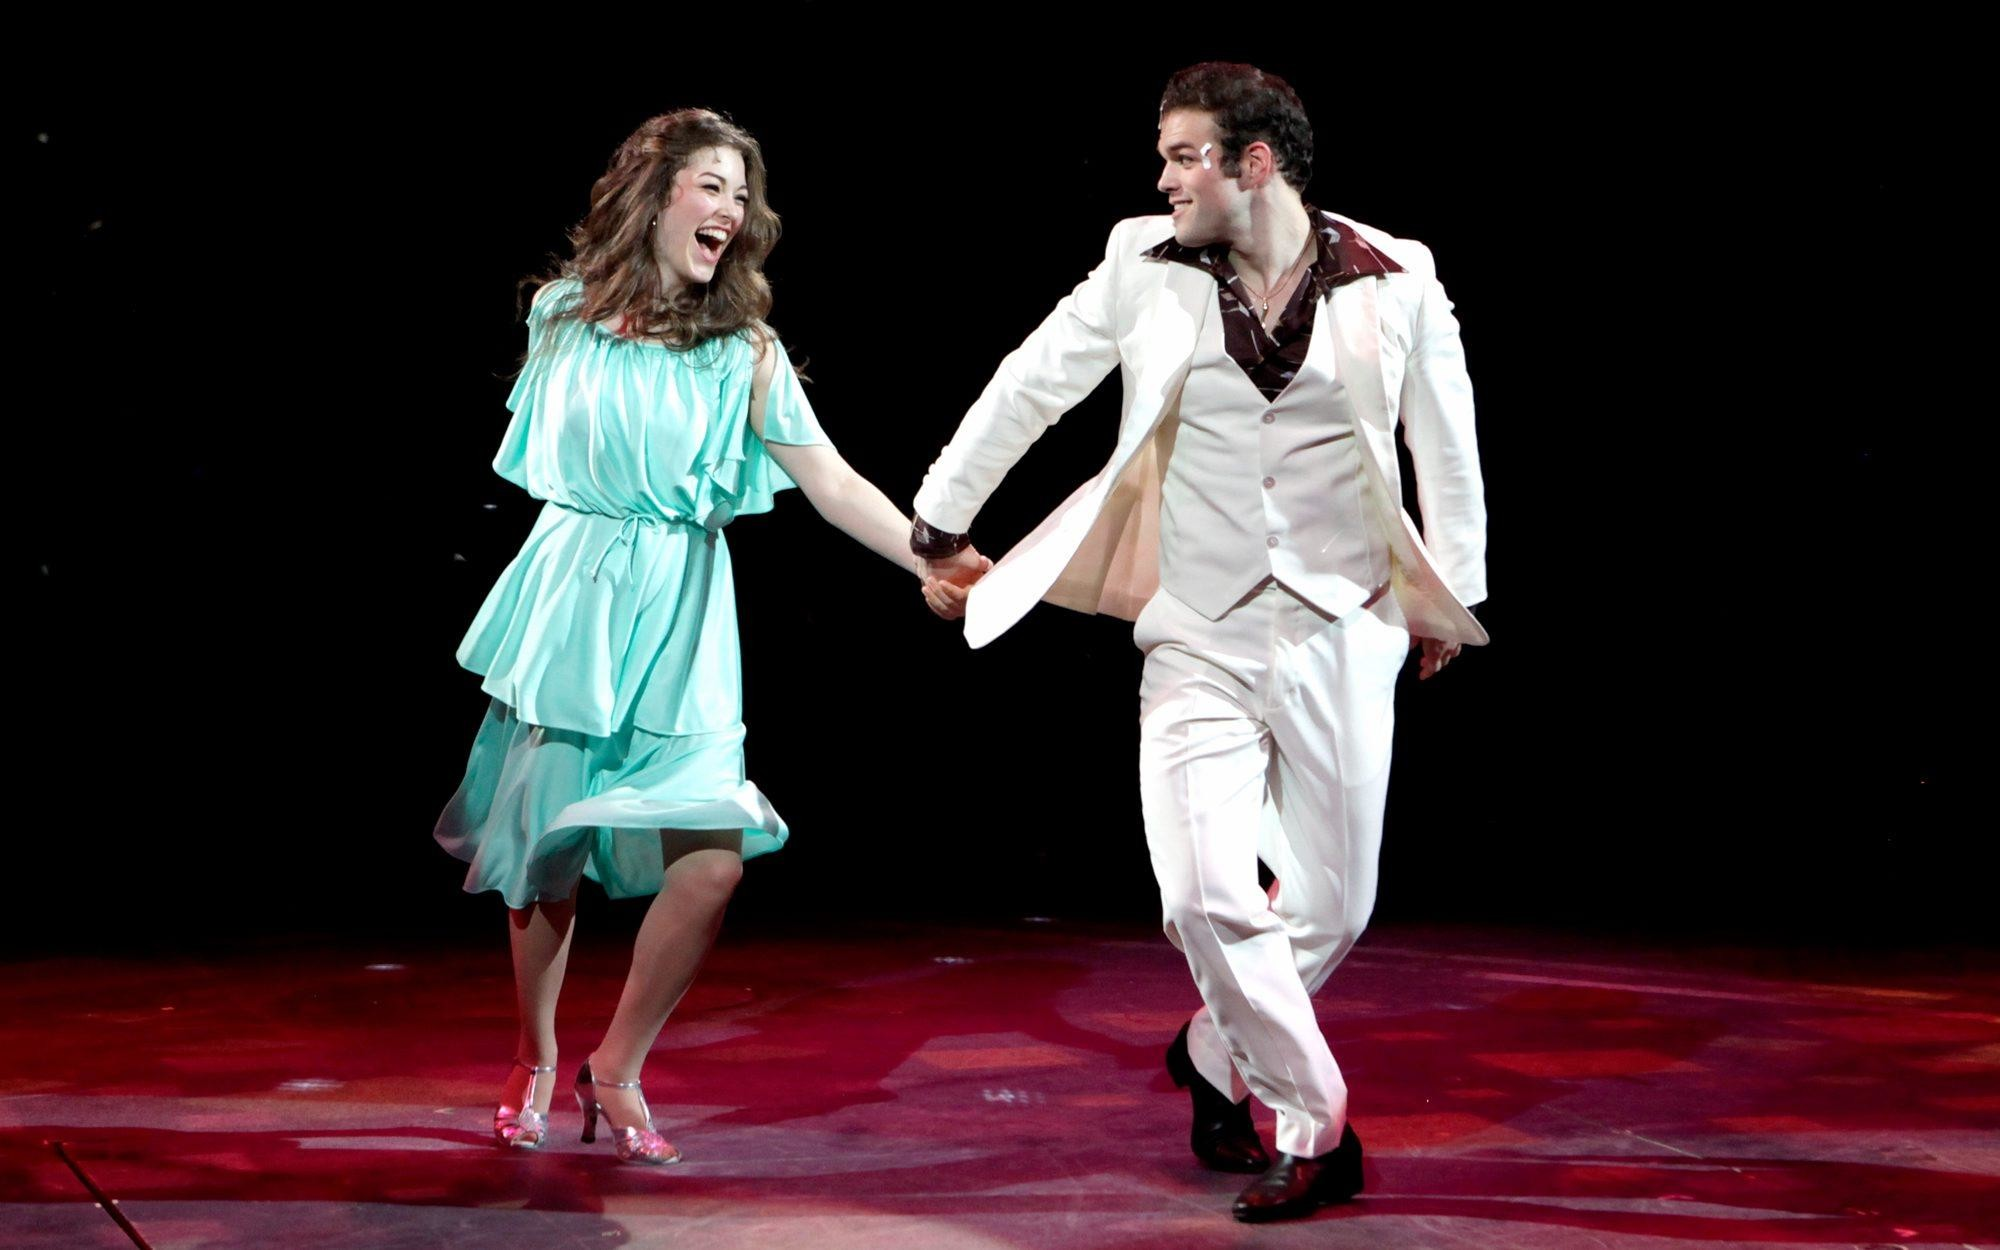 2000x1250 'Saturday Night Fever' delivers deliriously sexy dancing at NSMT - News -  Saugus Advertiser '